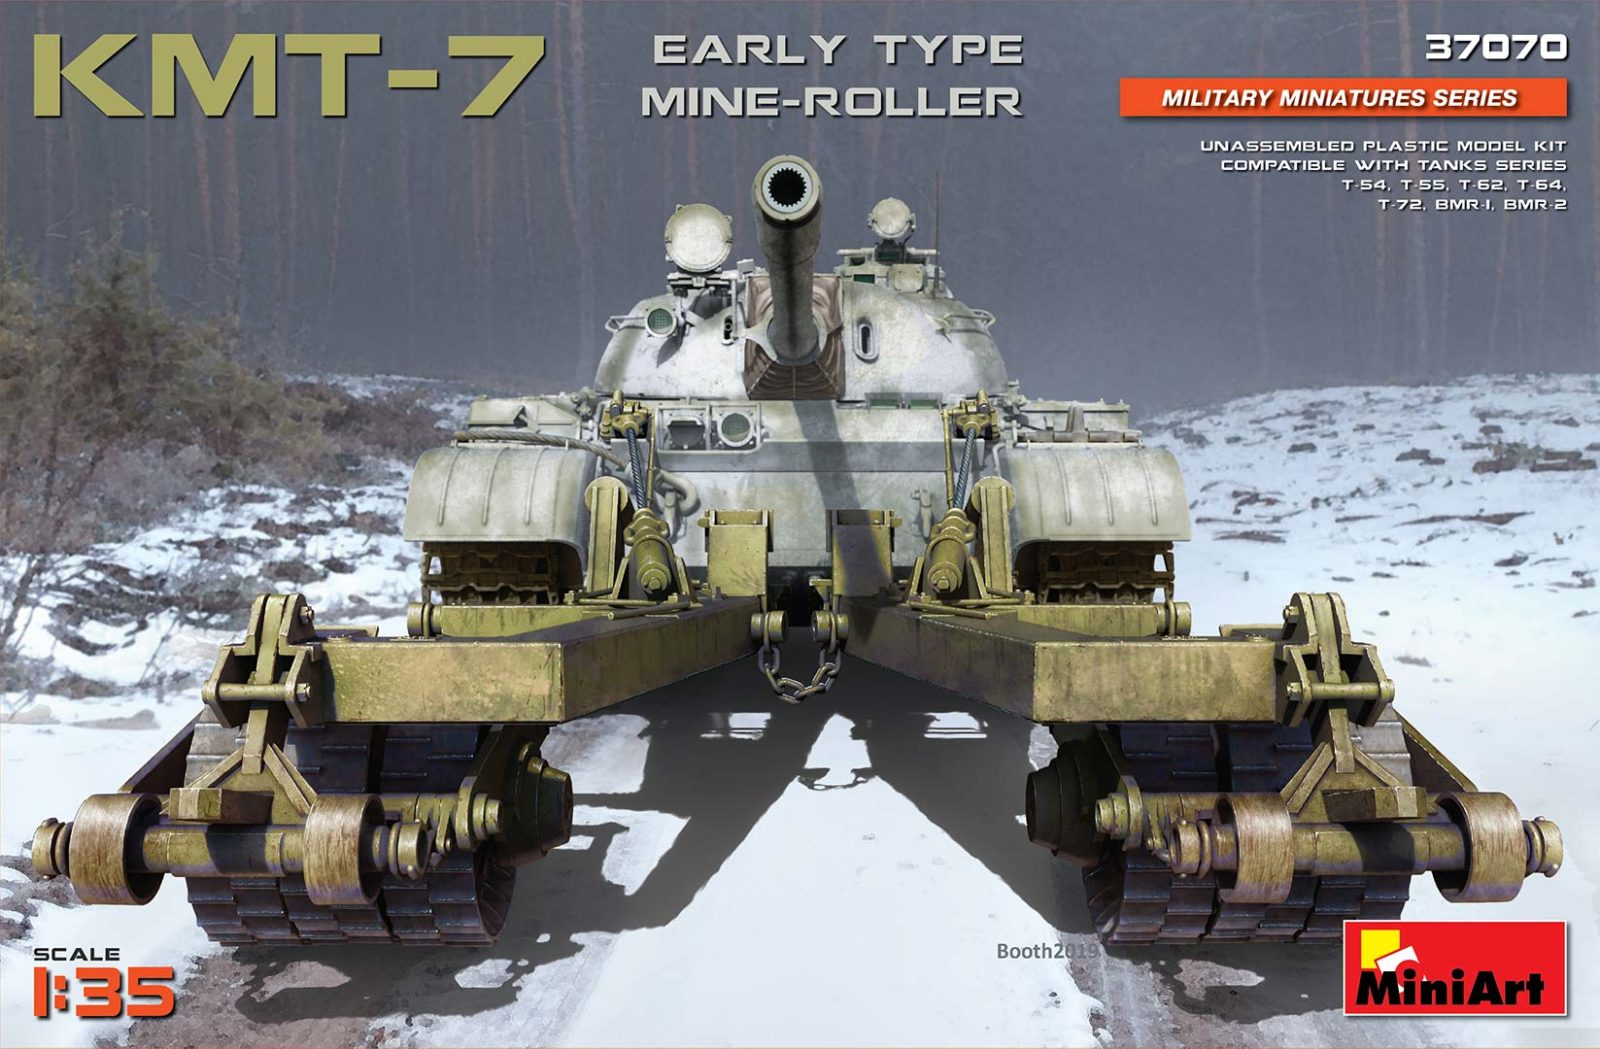 37070 KMT-7 Early Type Image